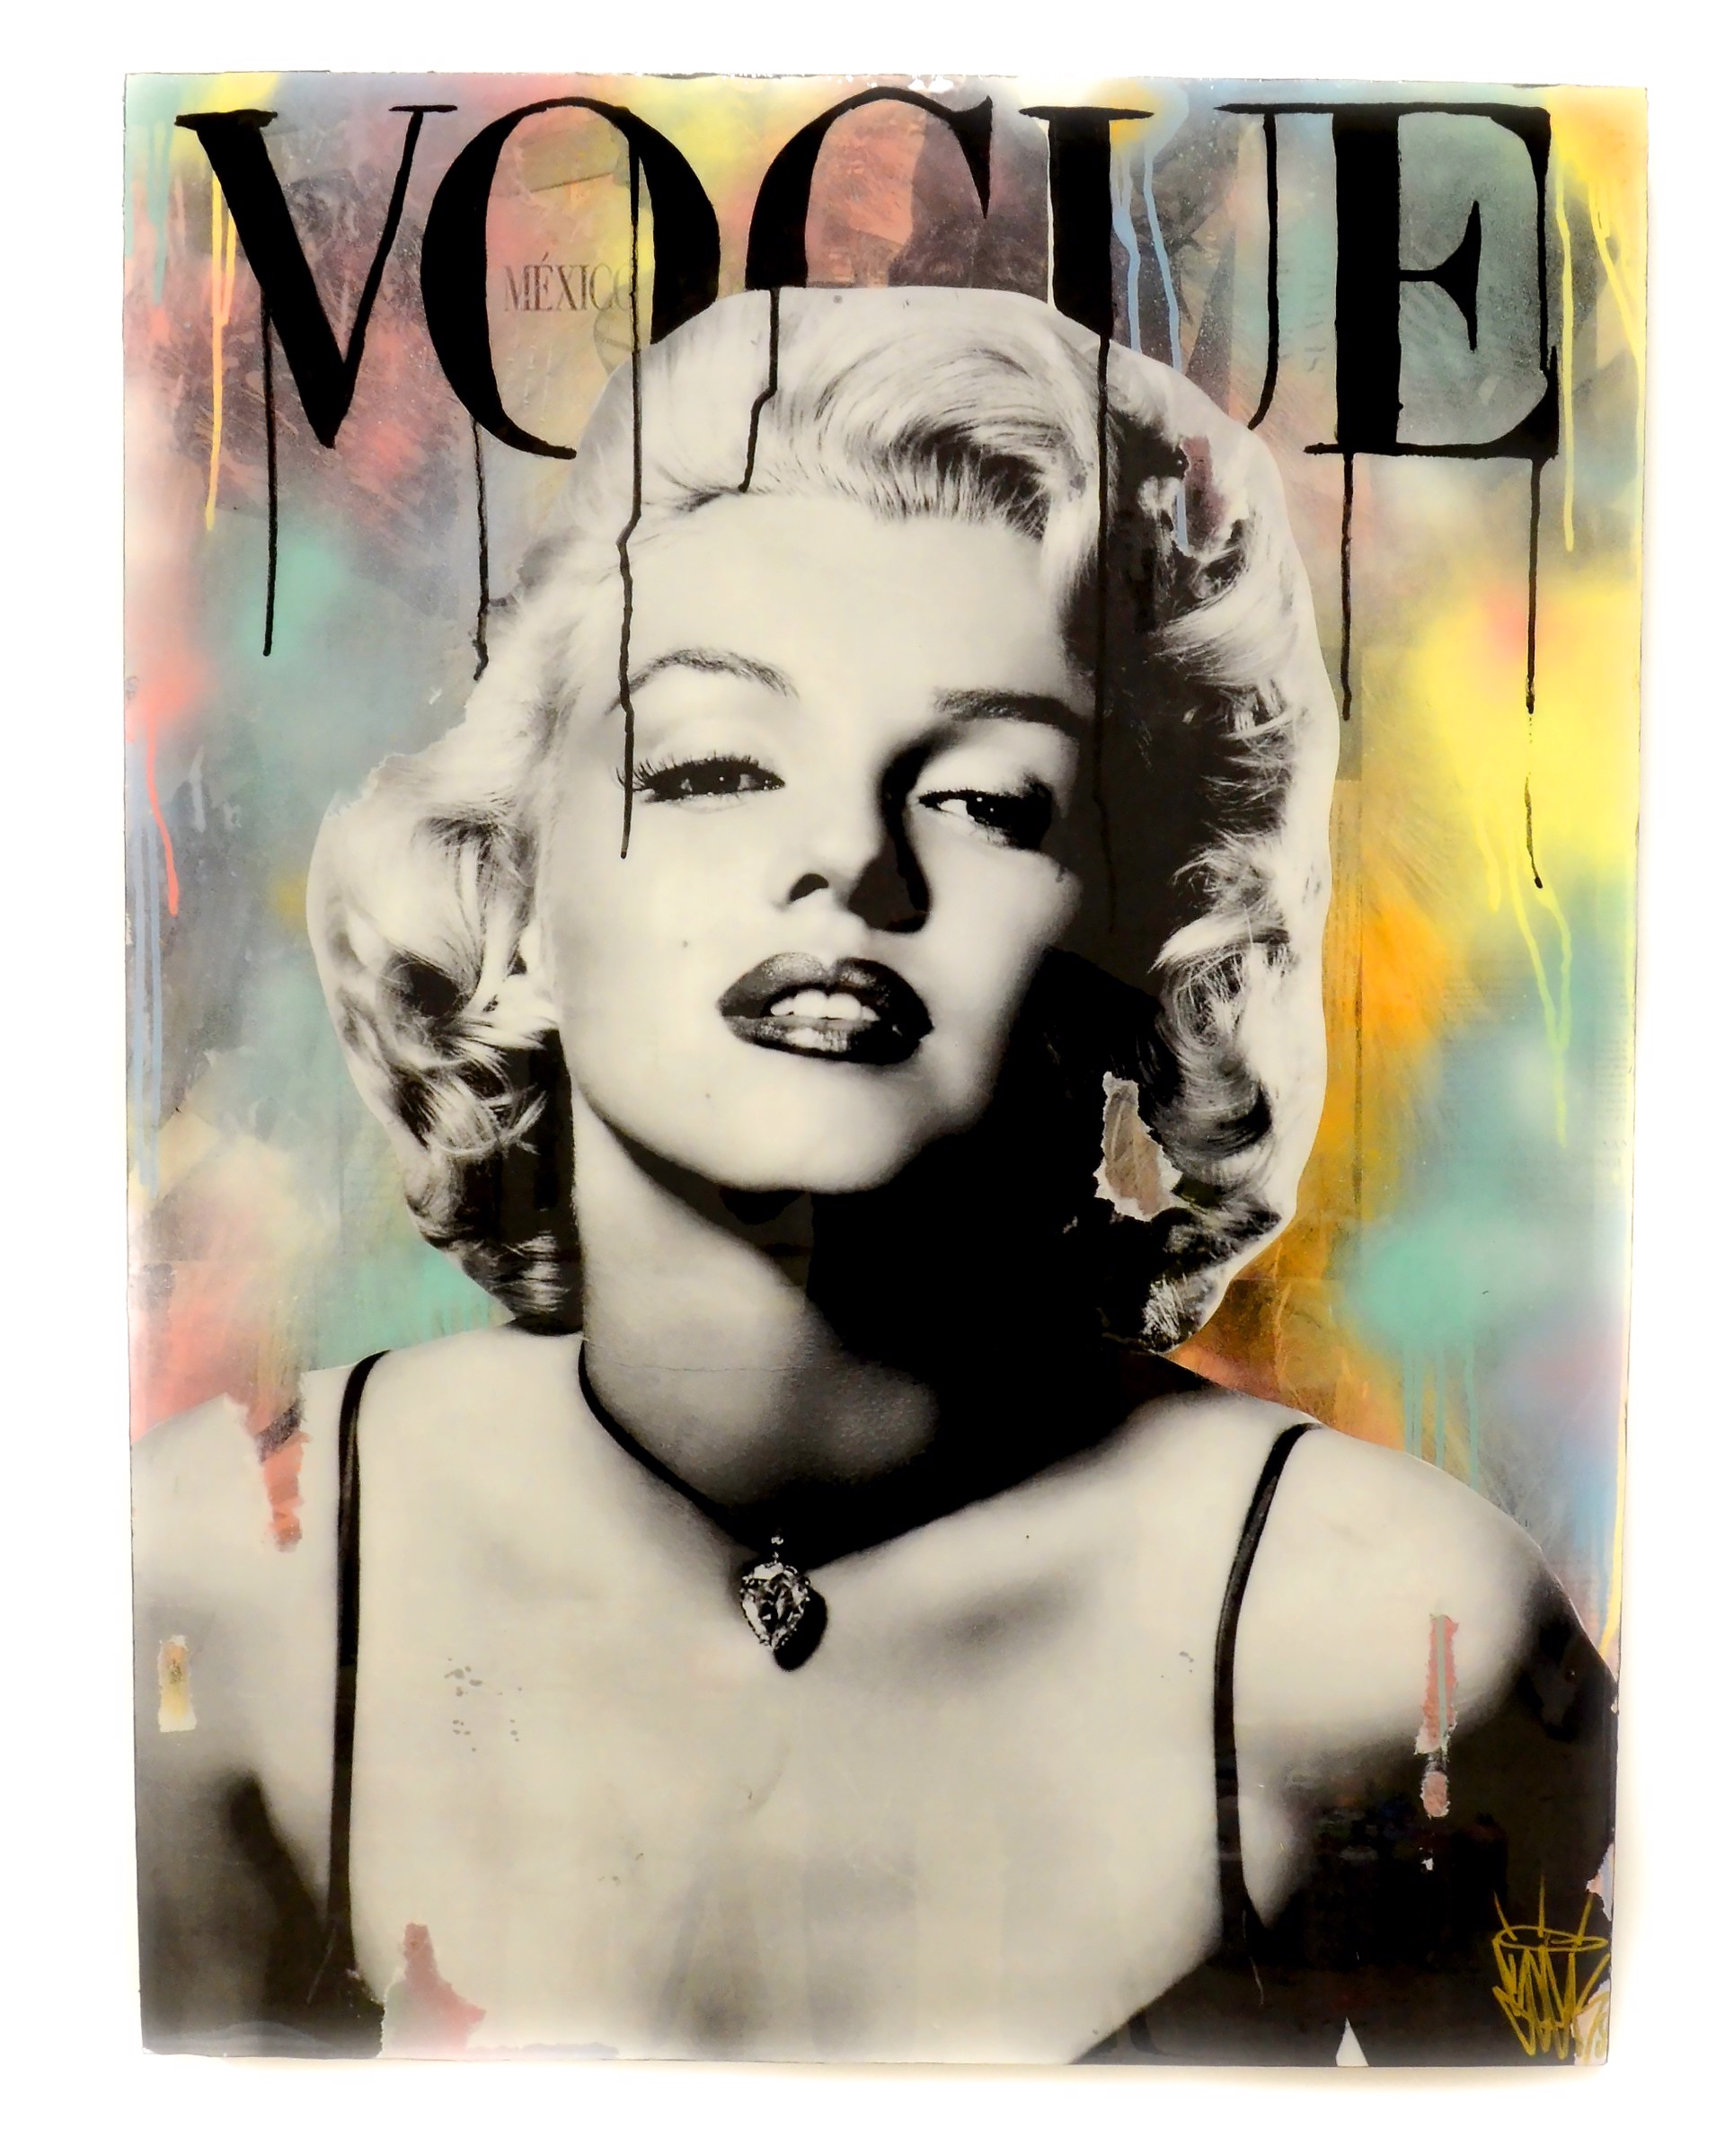 SOLD - Monroe x Vogue - Commissions available by Seek One